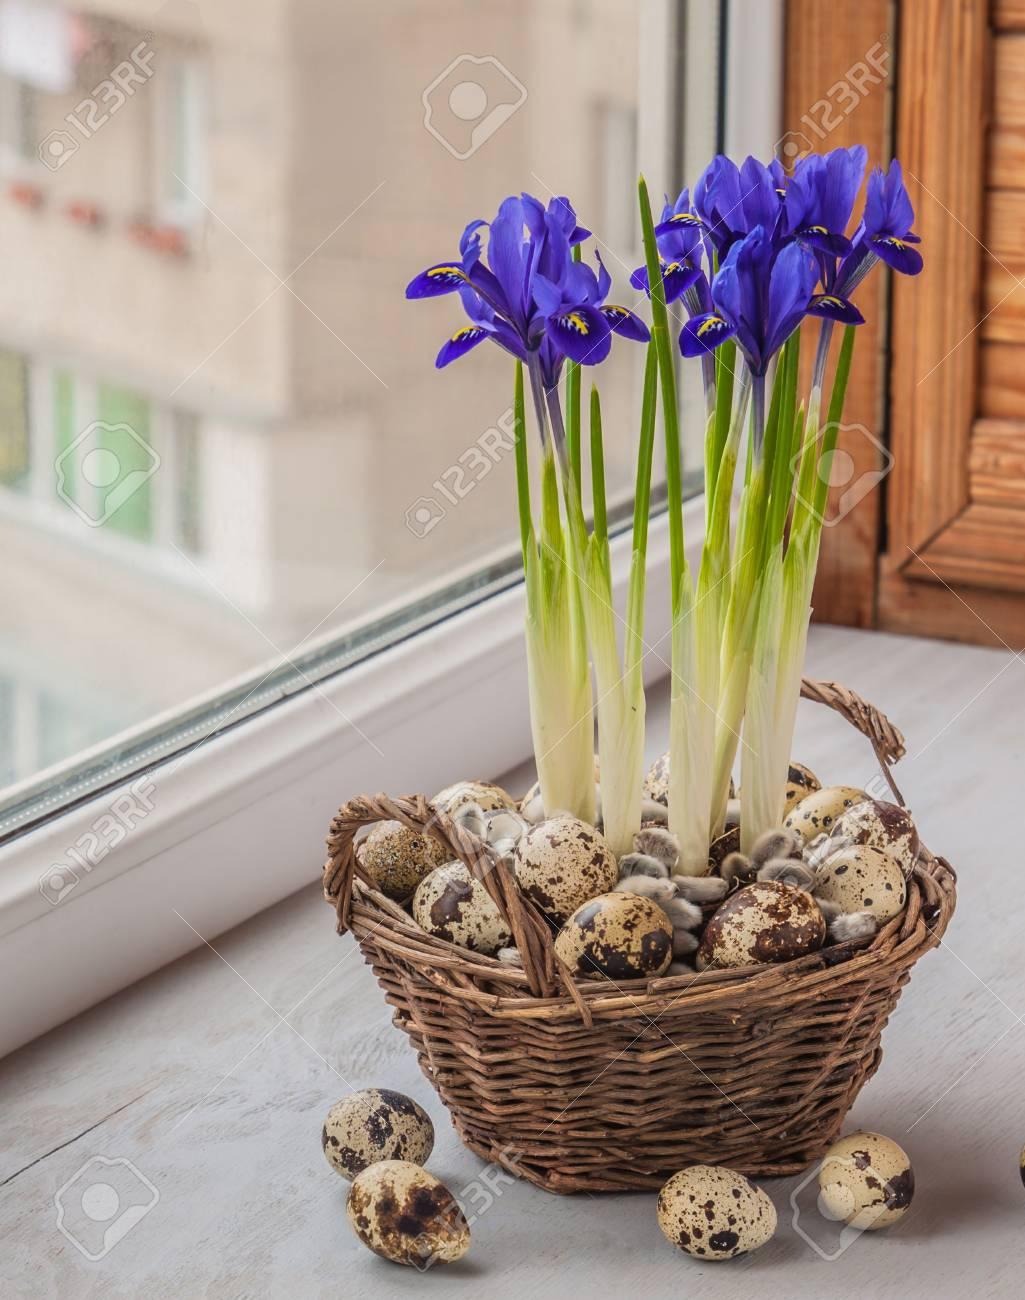 Easter composition of flowering bulbous irises in a basket and quail eggs Stock Photo - 26605336